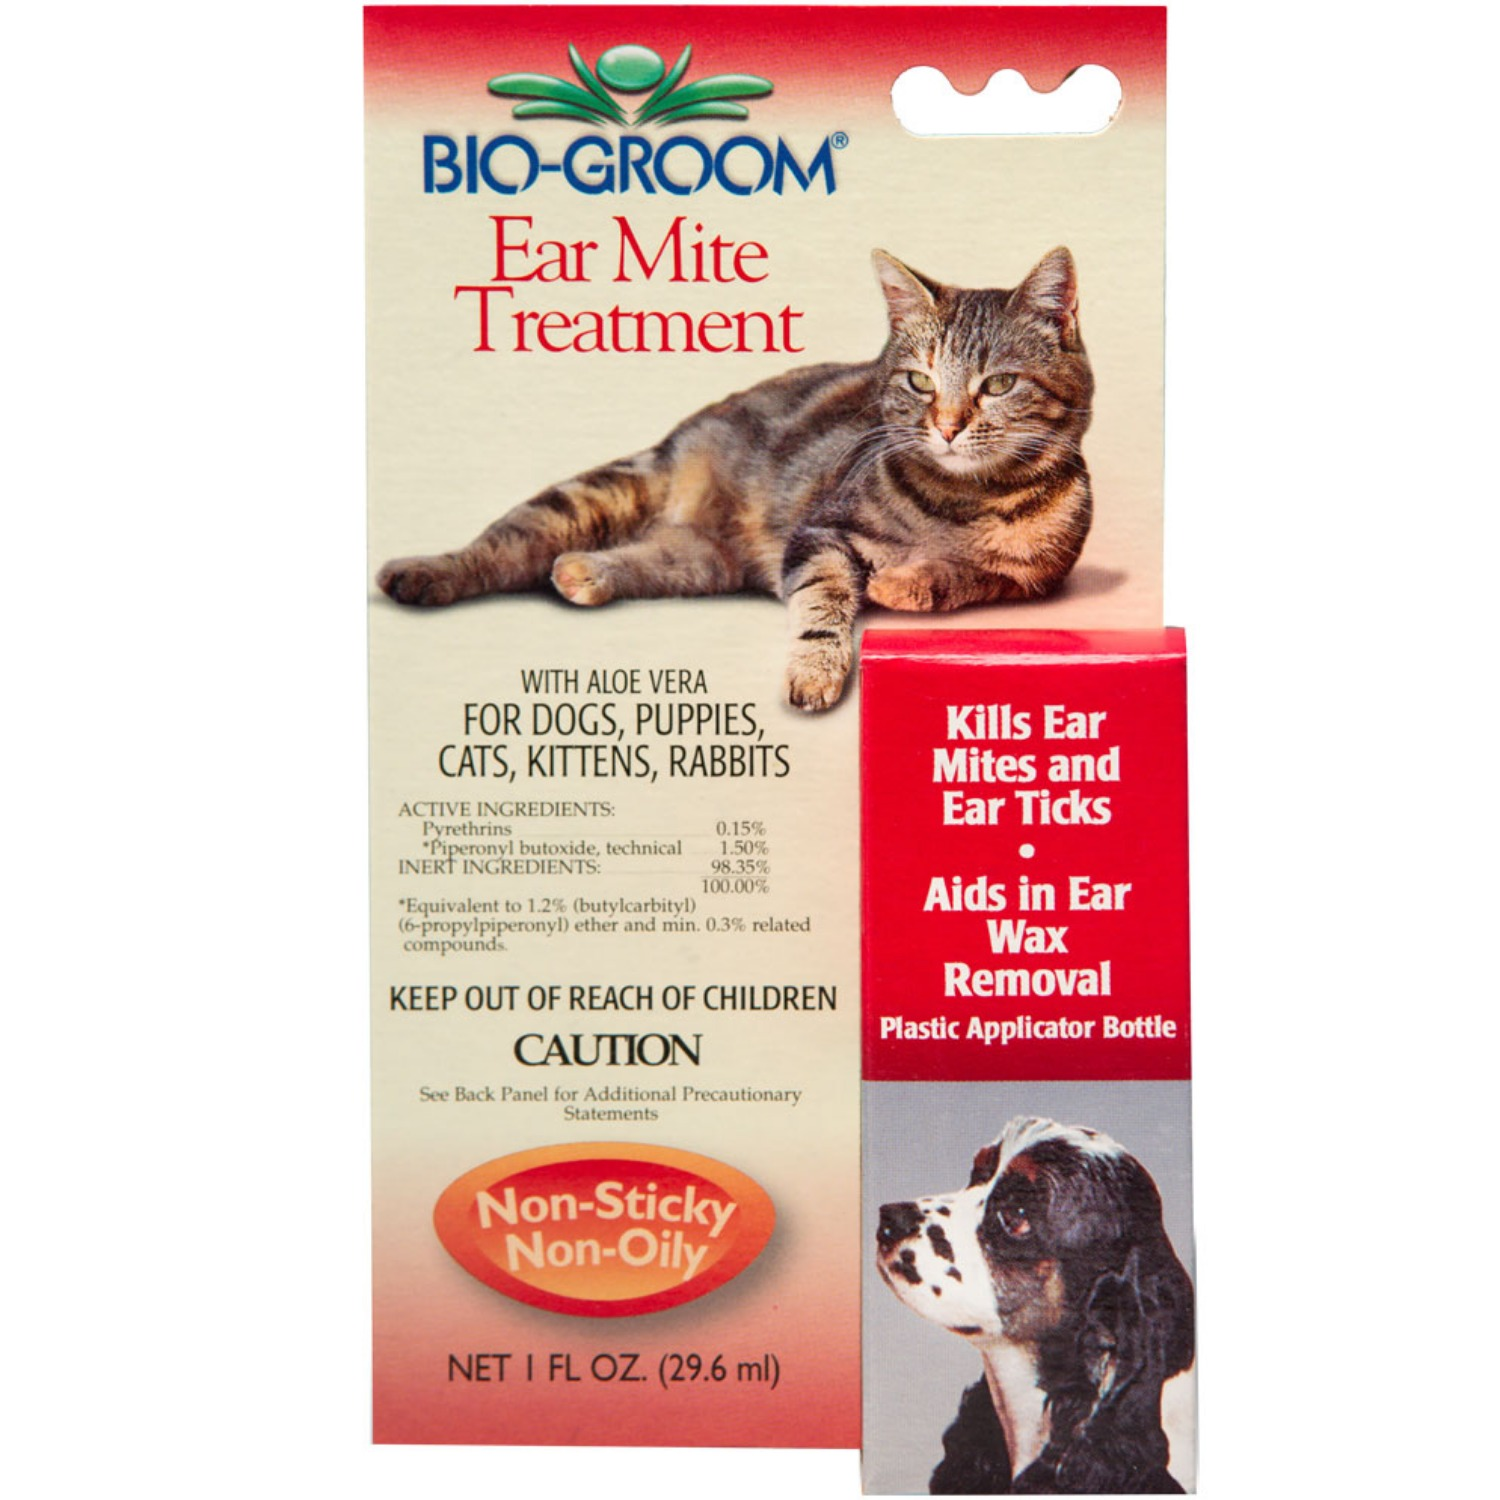 Details about Bio-Groom Natural Ear Mite Treatment 1 oz | Aloe Vera | For  Pets of All Ages